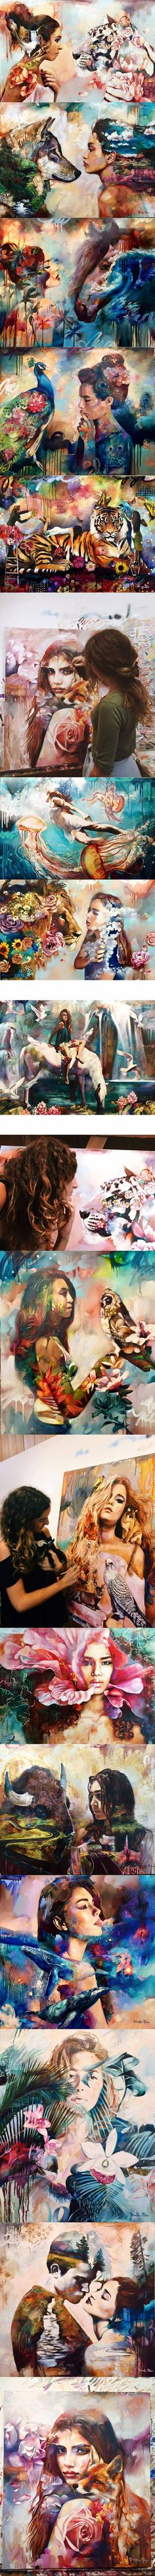 Dimitra Milan paintings reflect a dreamy world